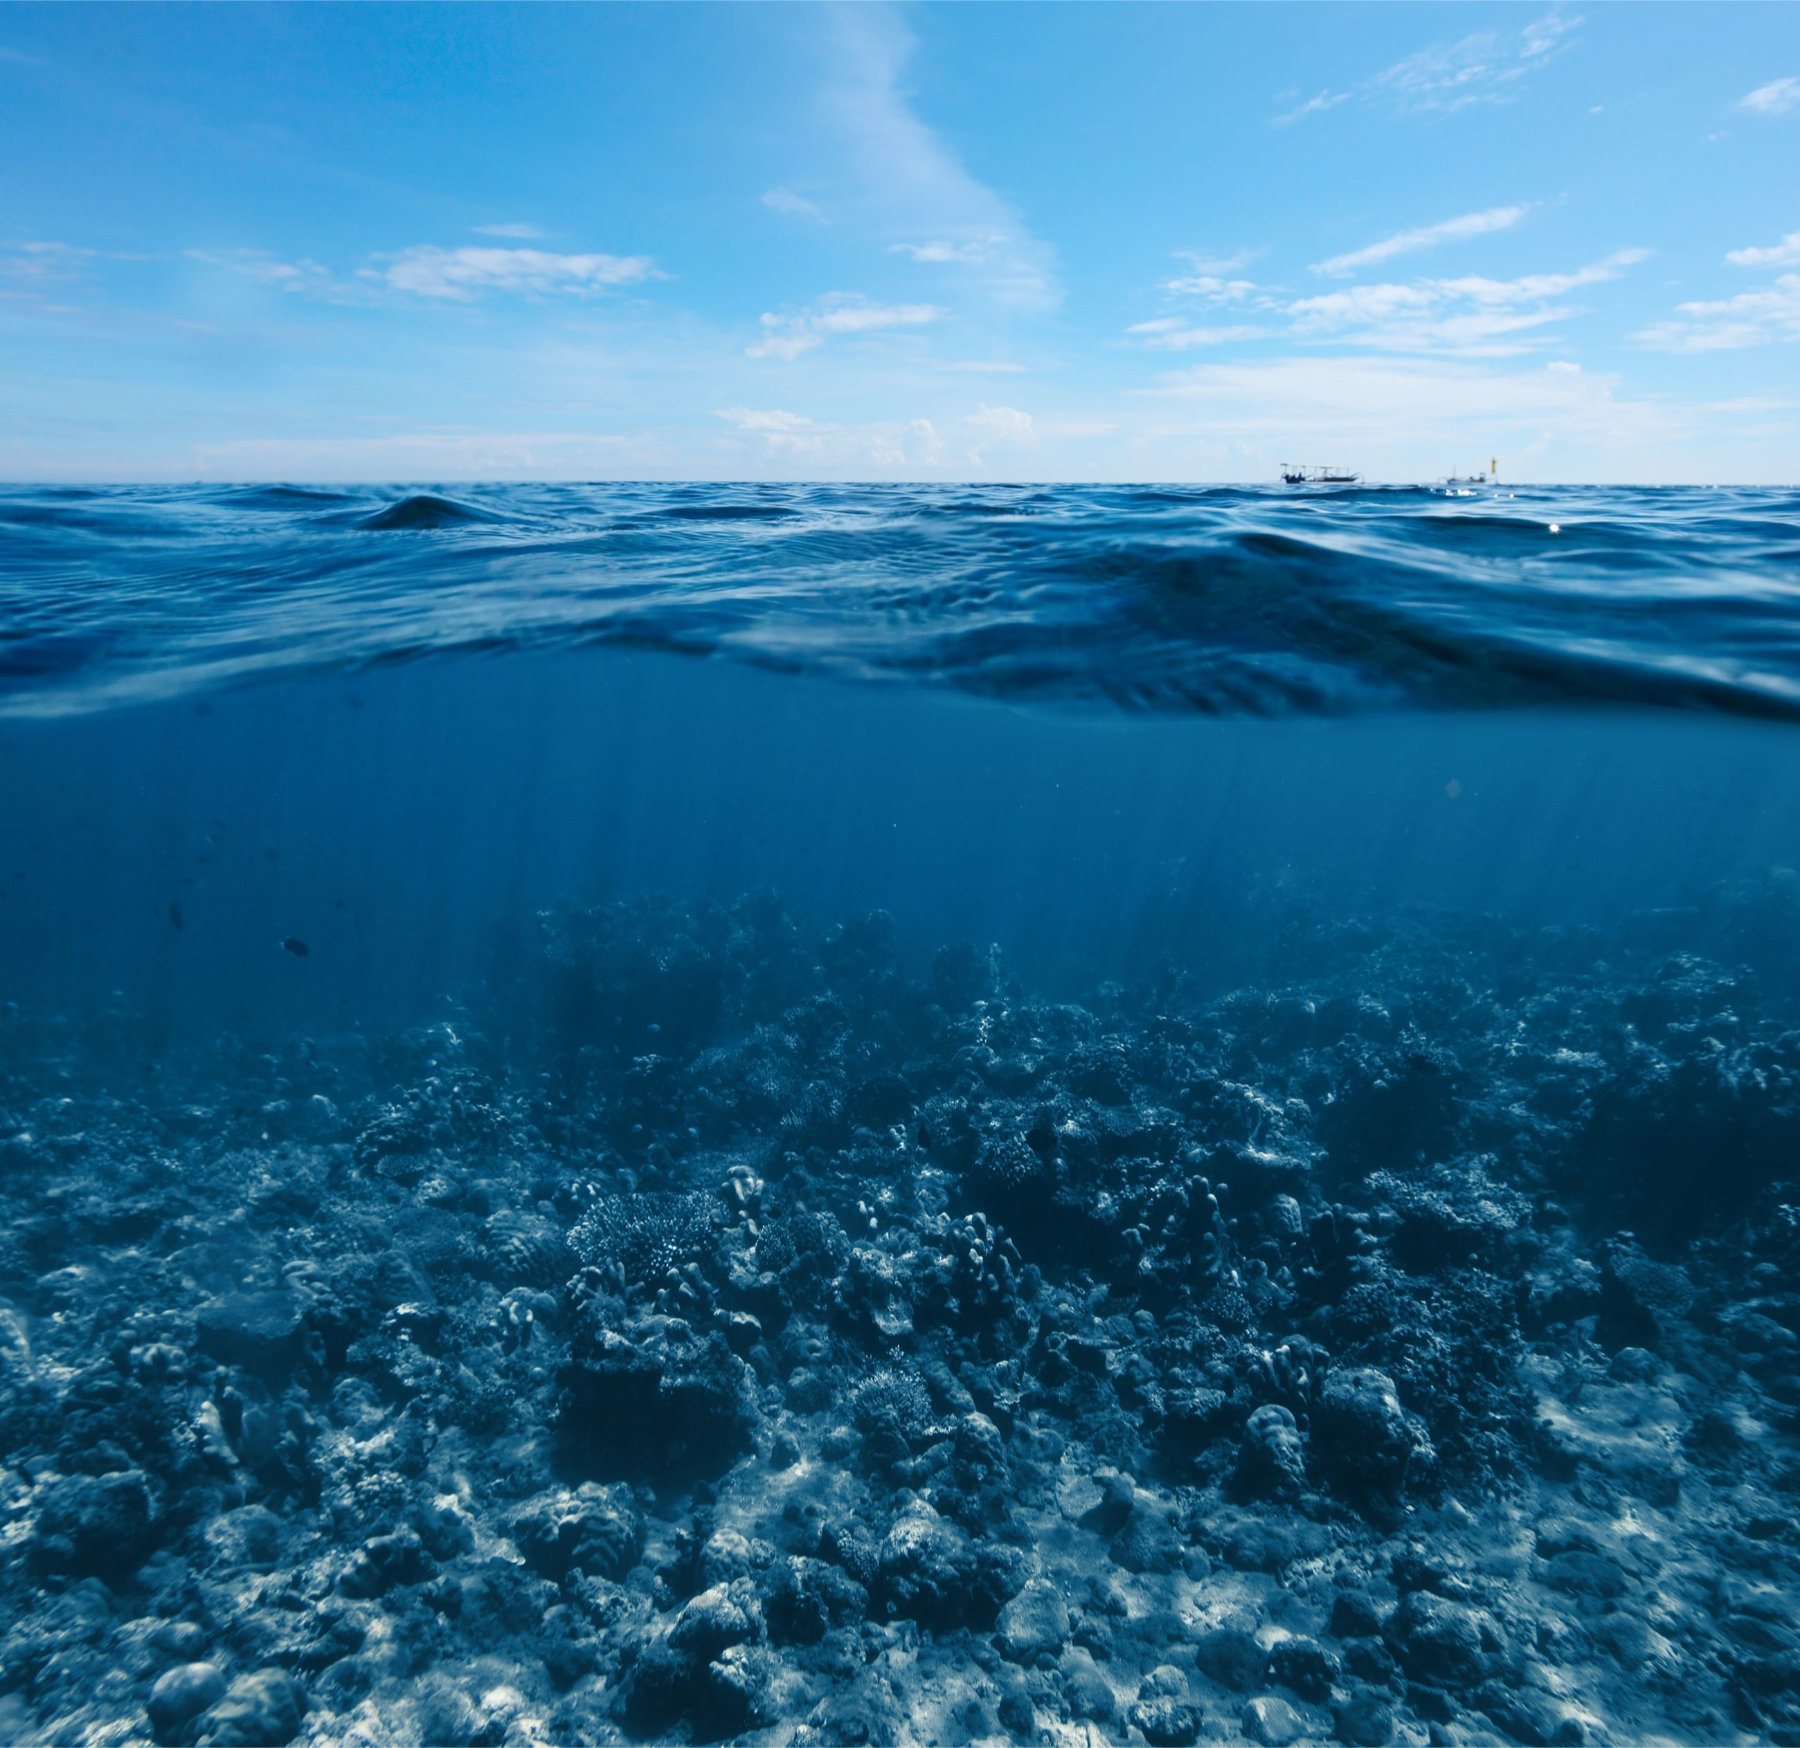 image of the sea